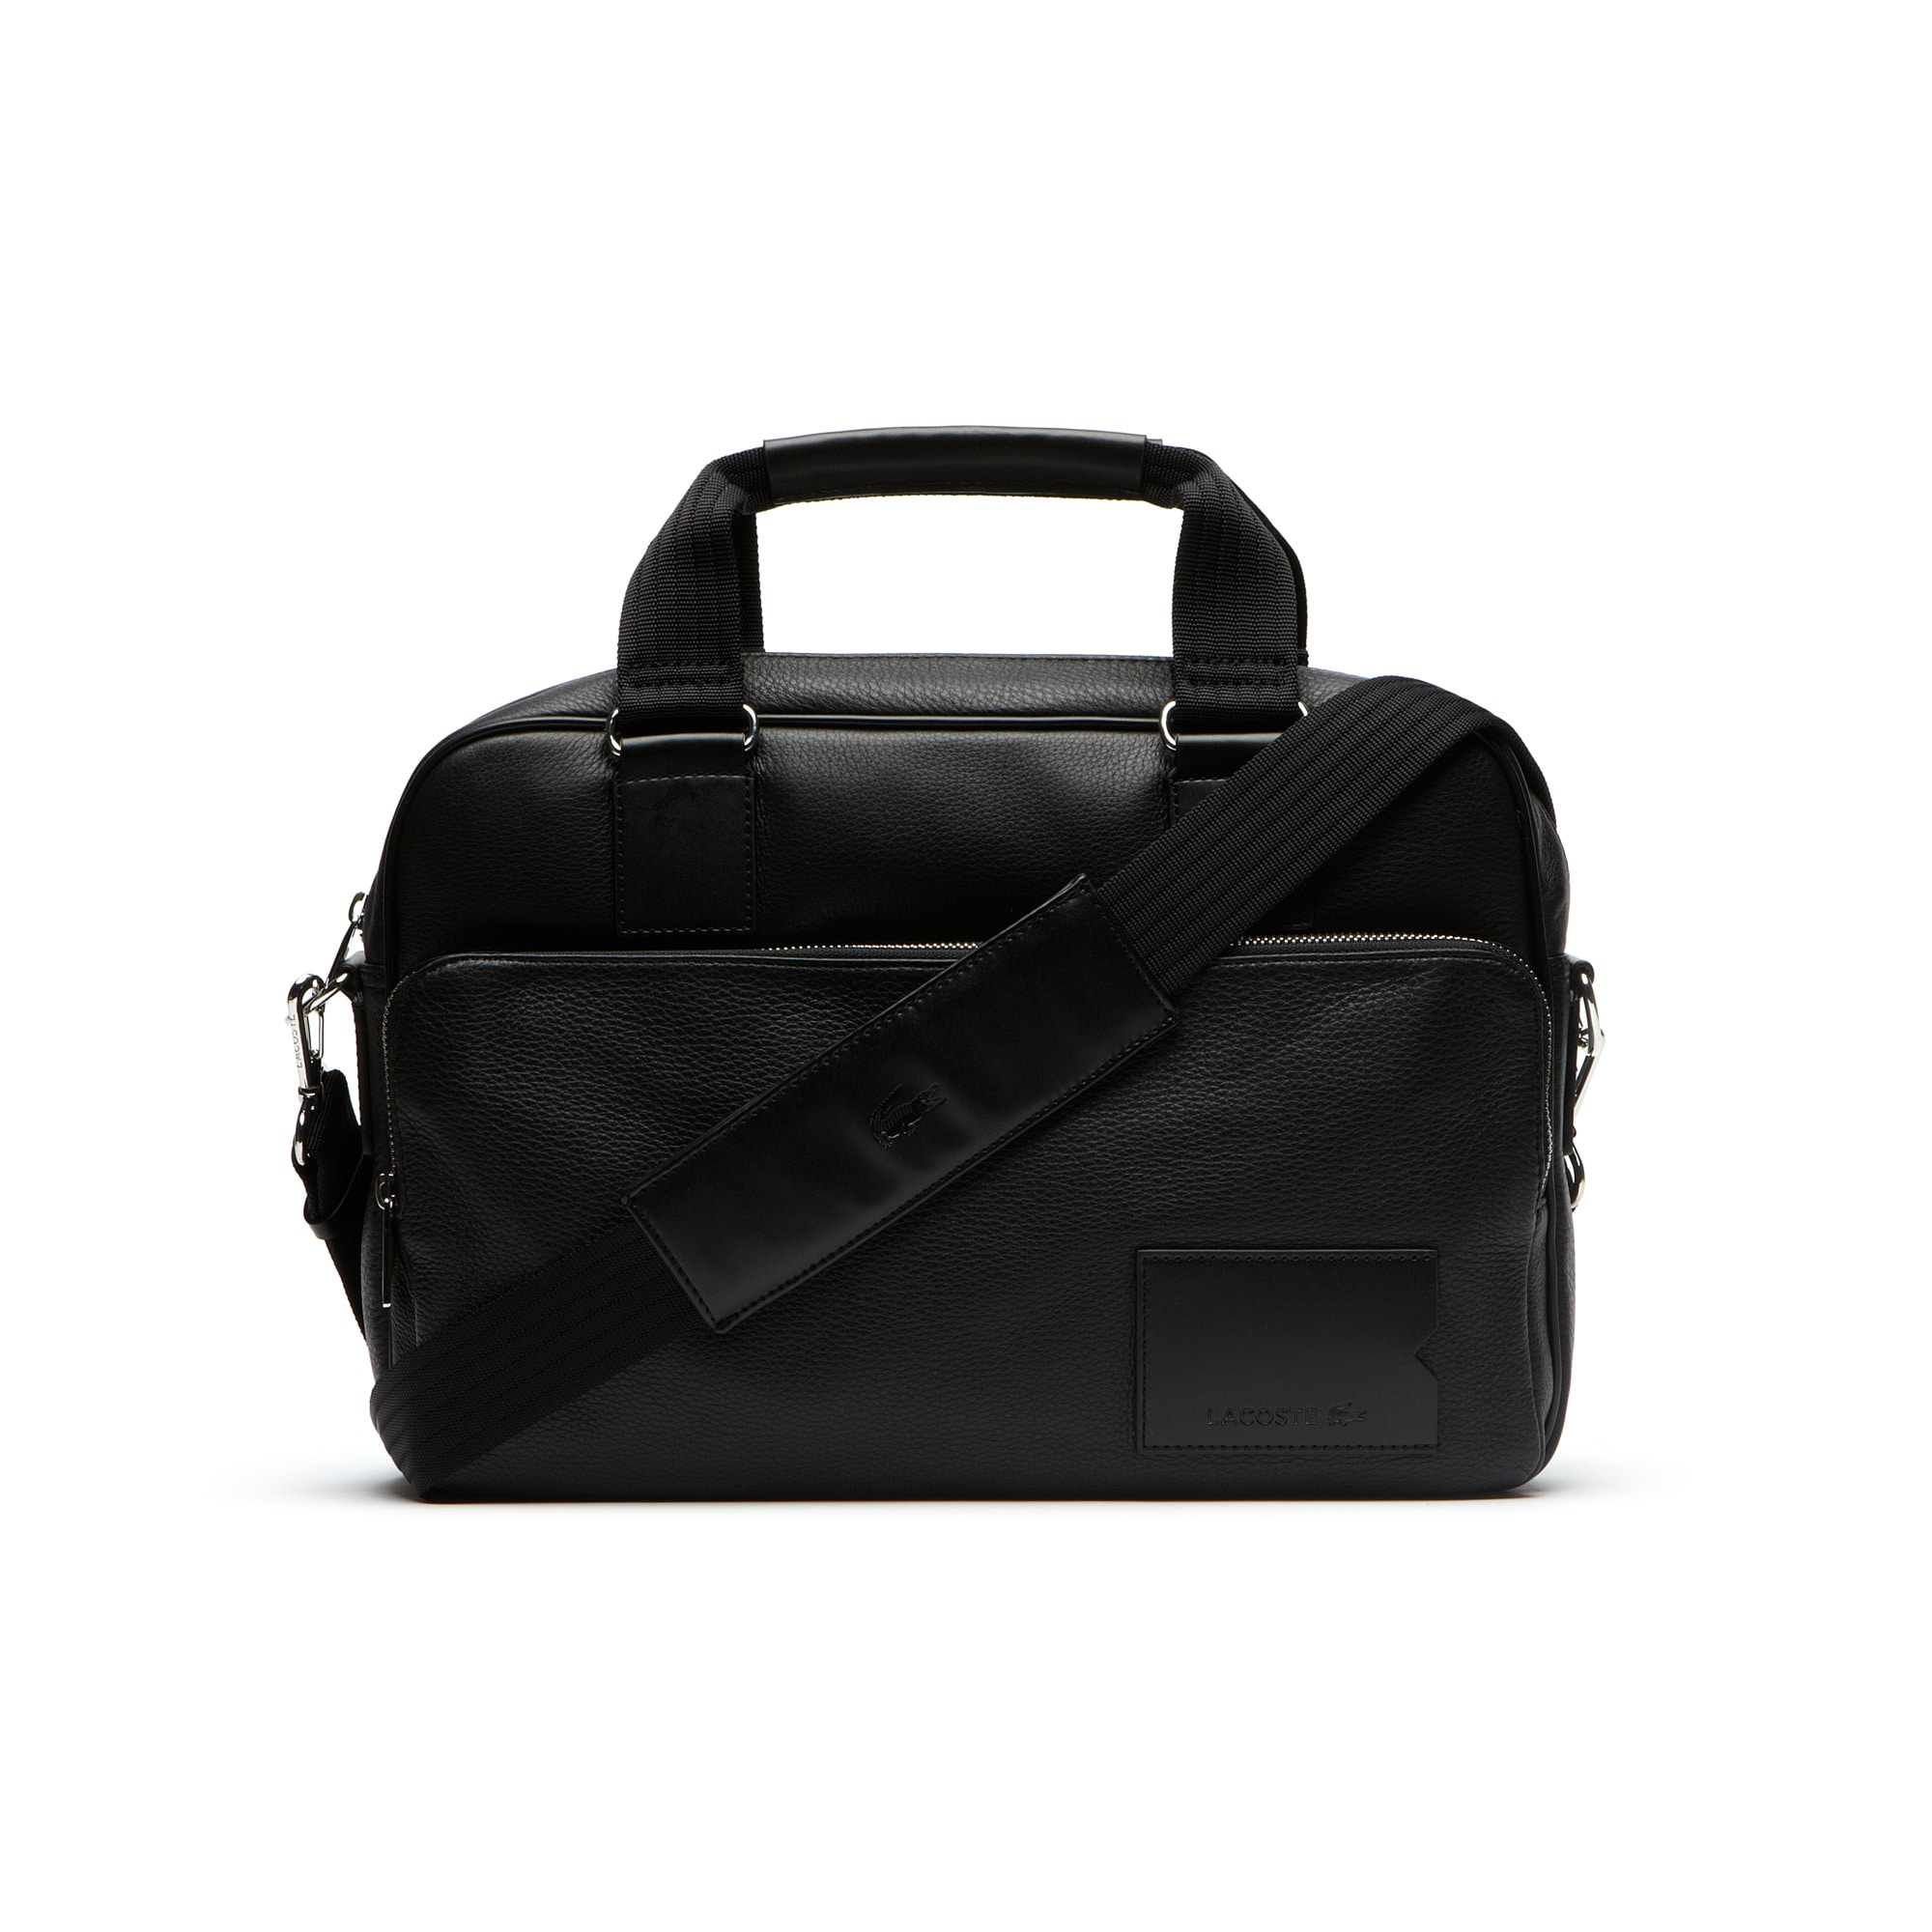 Men's classic Premium computer bag in leather